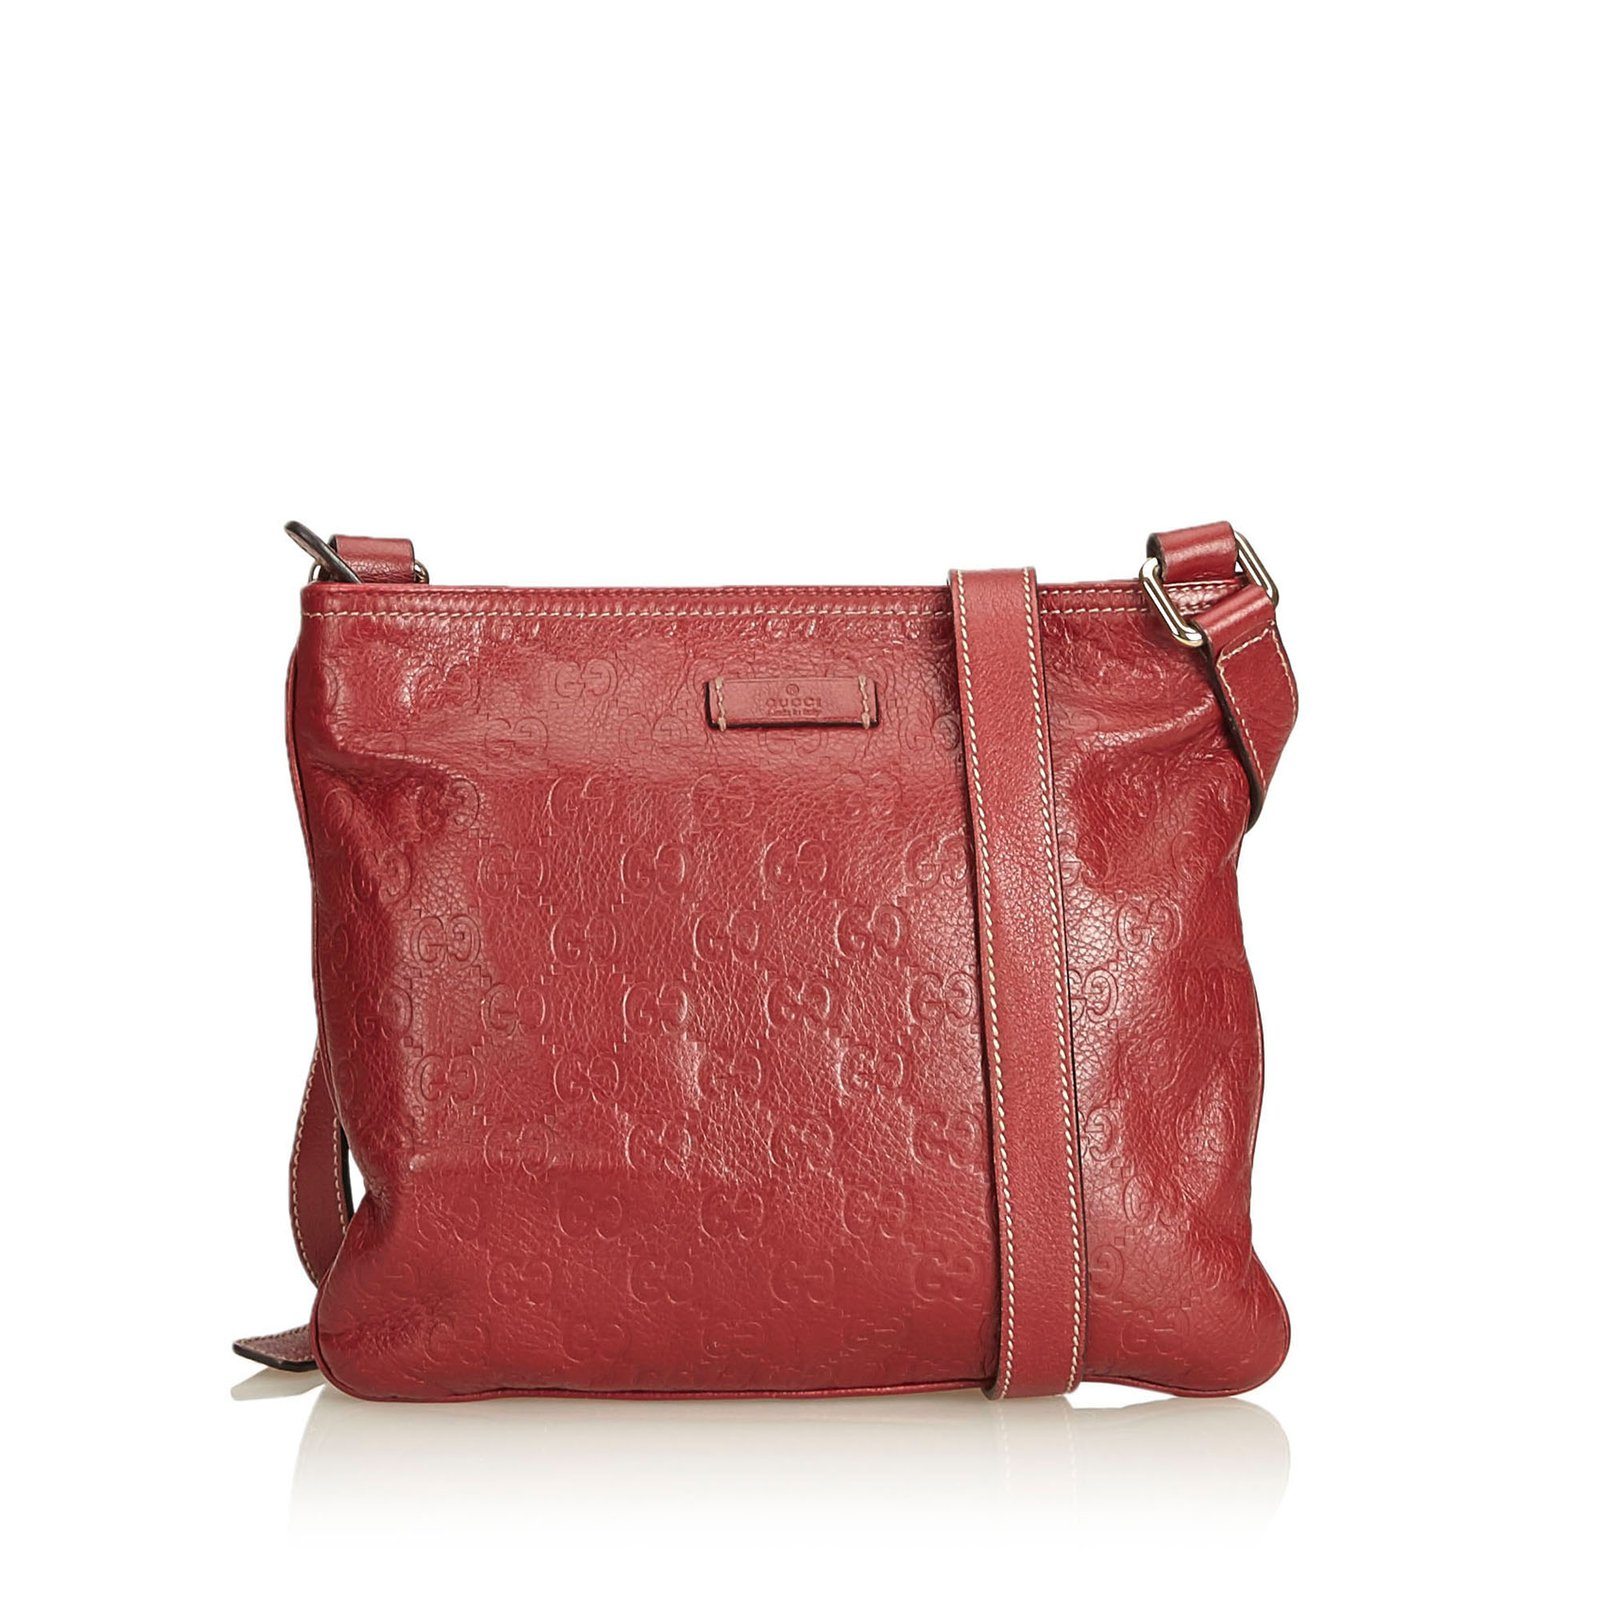 f0a3cf57ecc6 Gucci Guccissima Leather Crossbody Handbags Leather,Other Red ref.91318